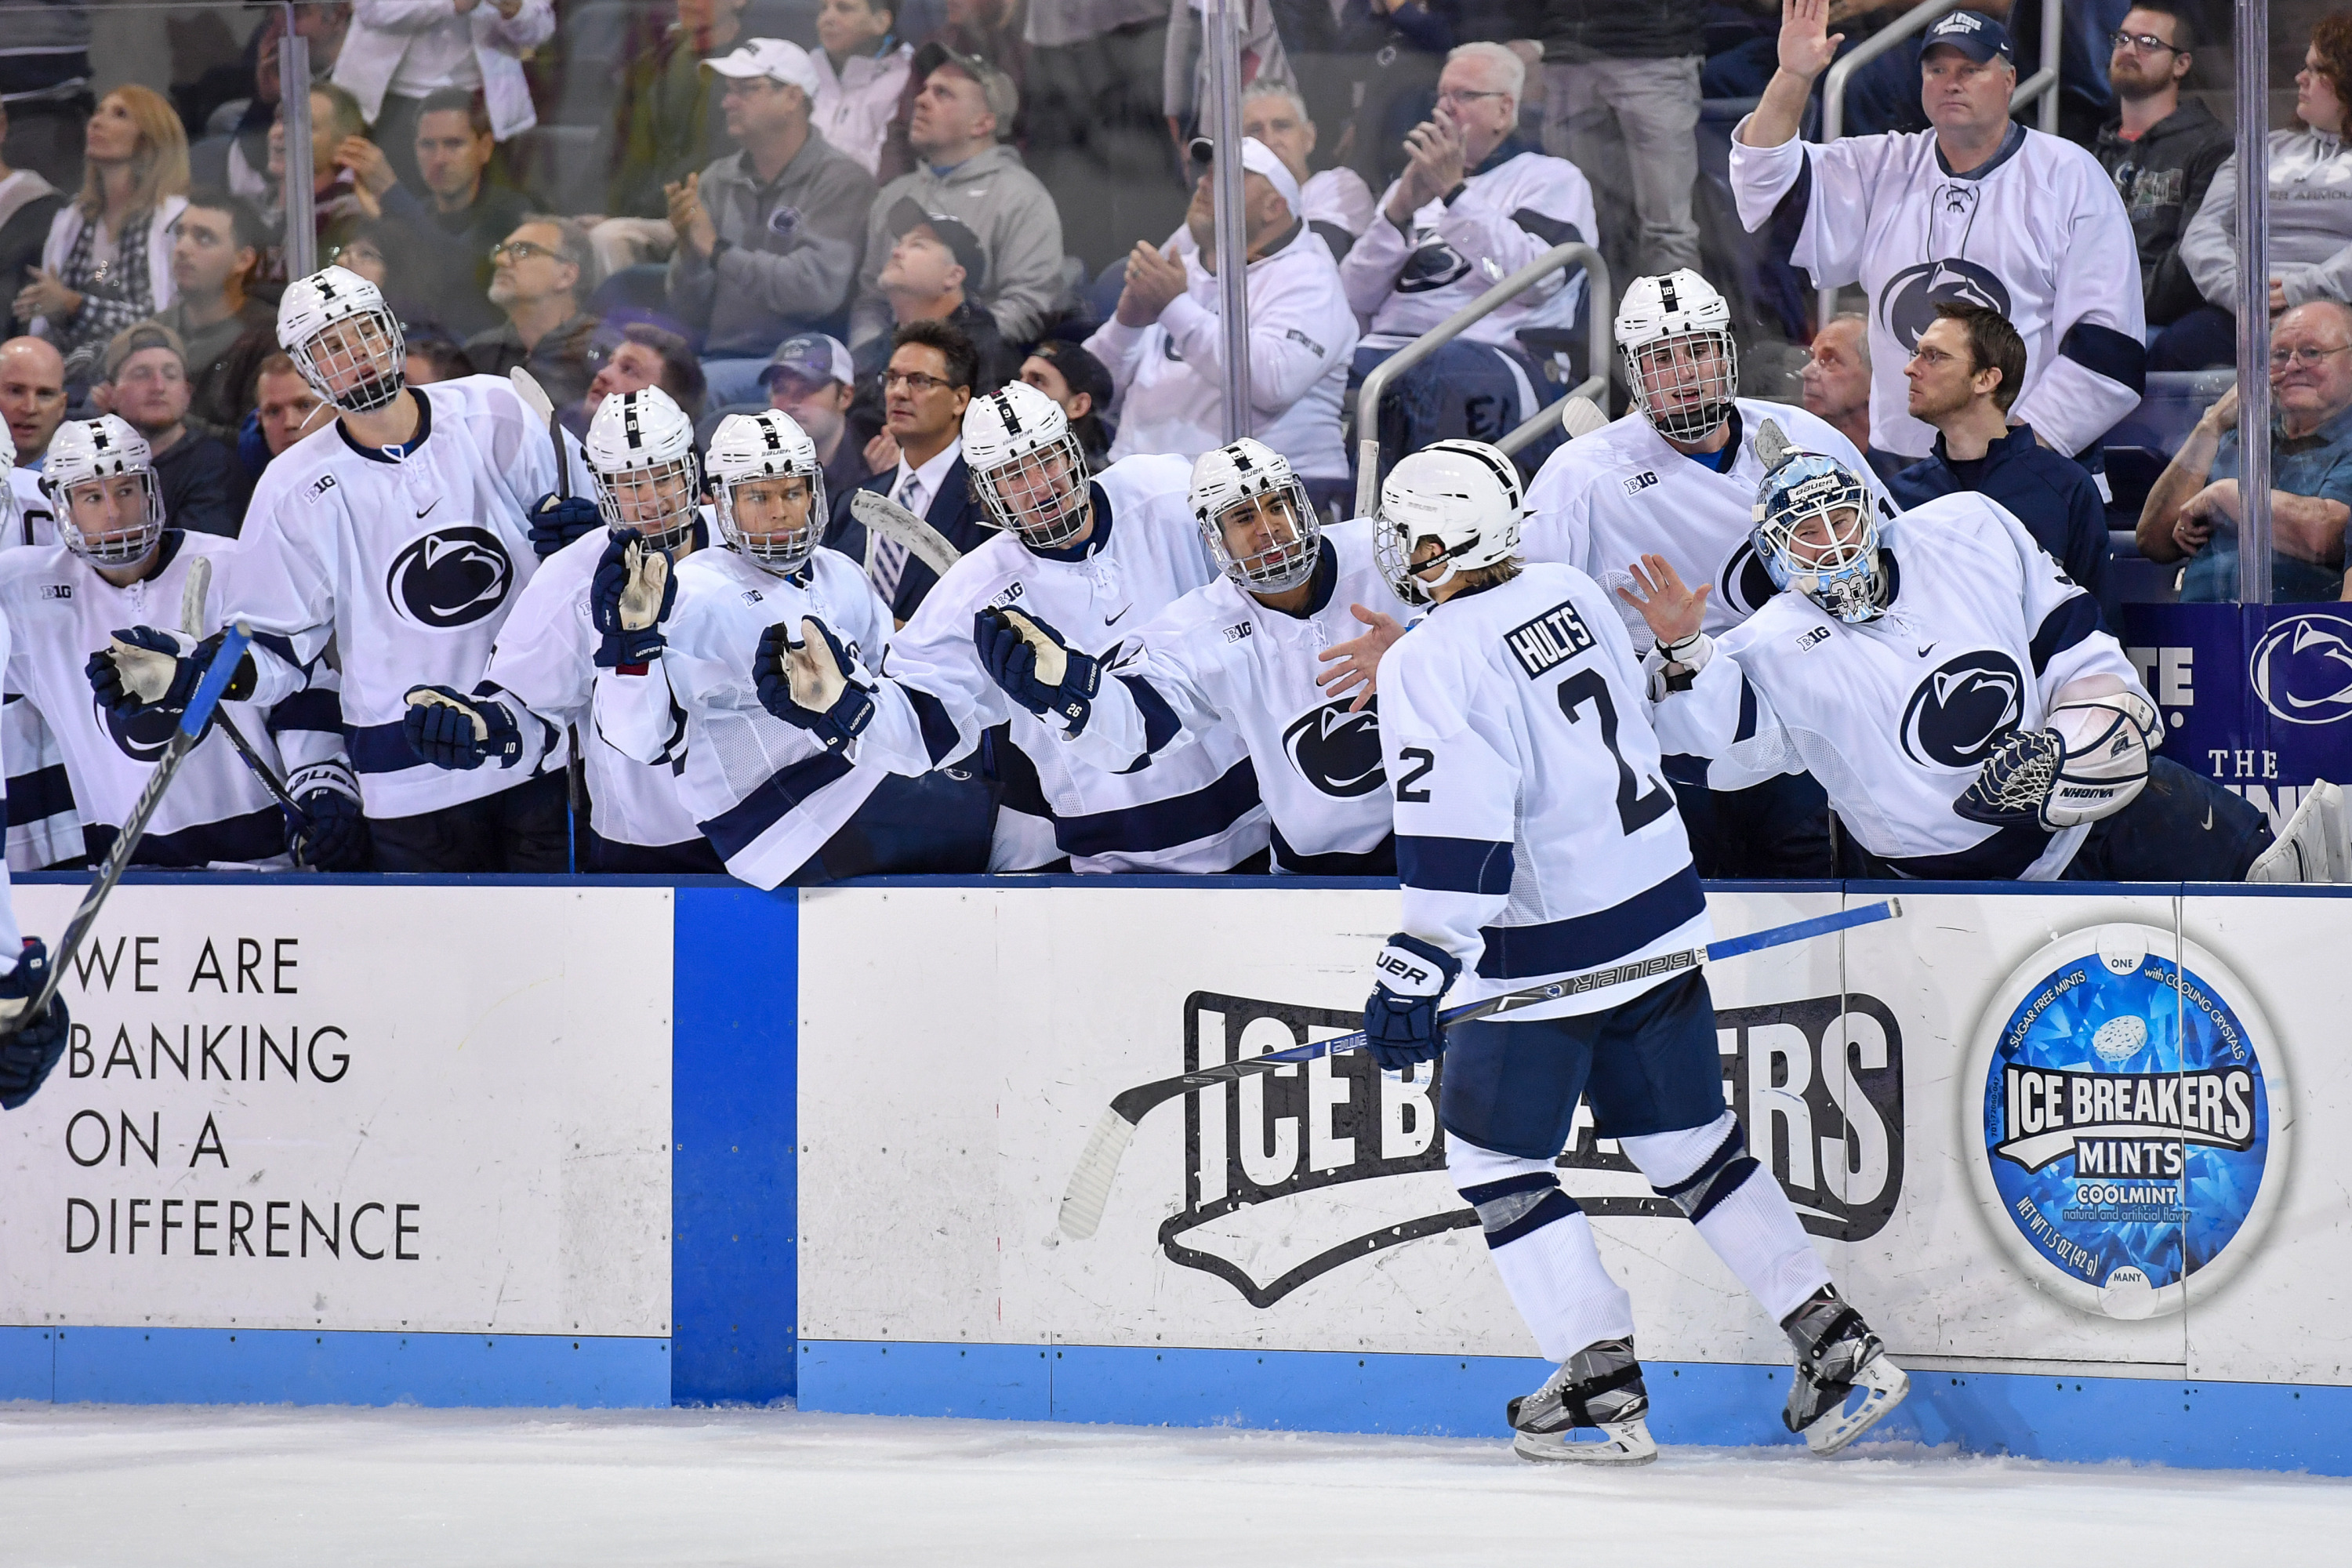 men's hockey set for international game vs. brock - penn state